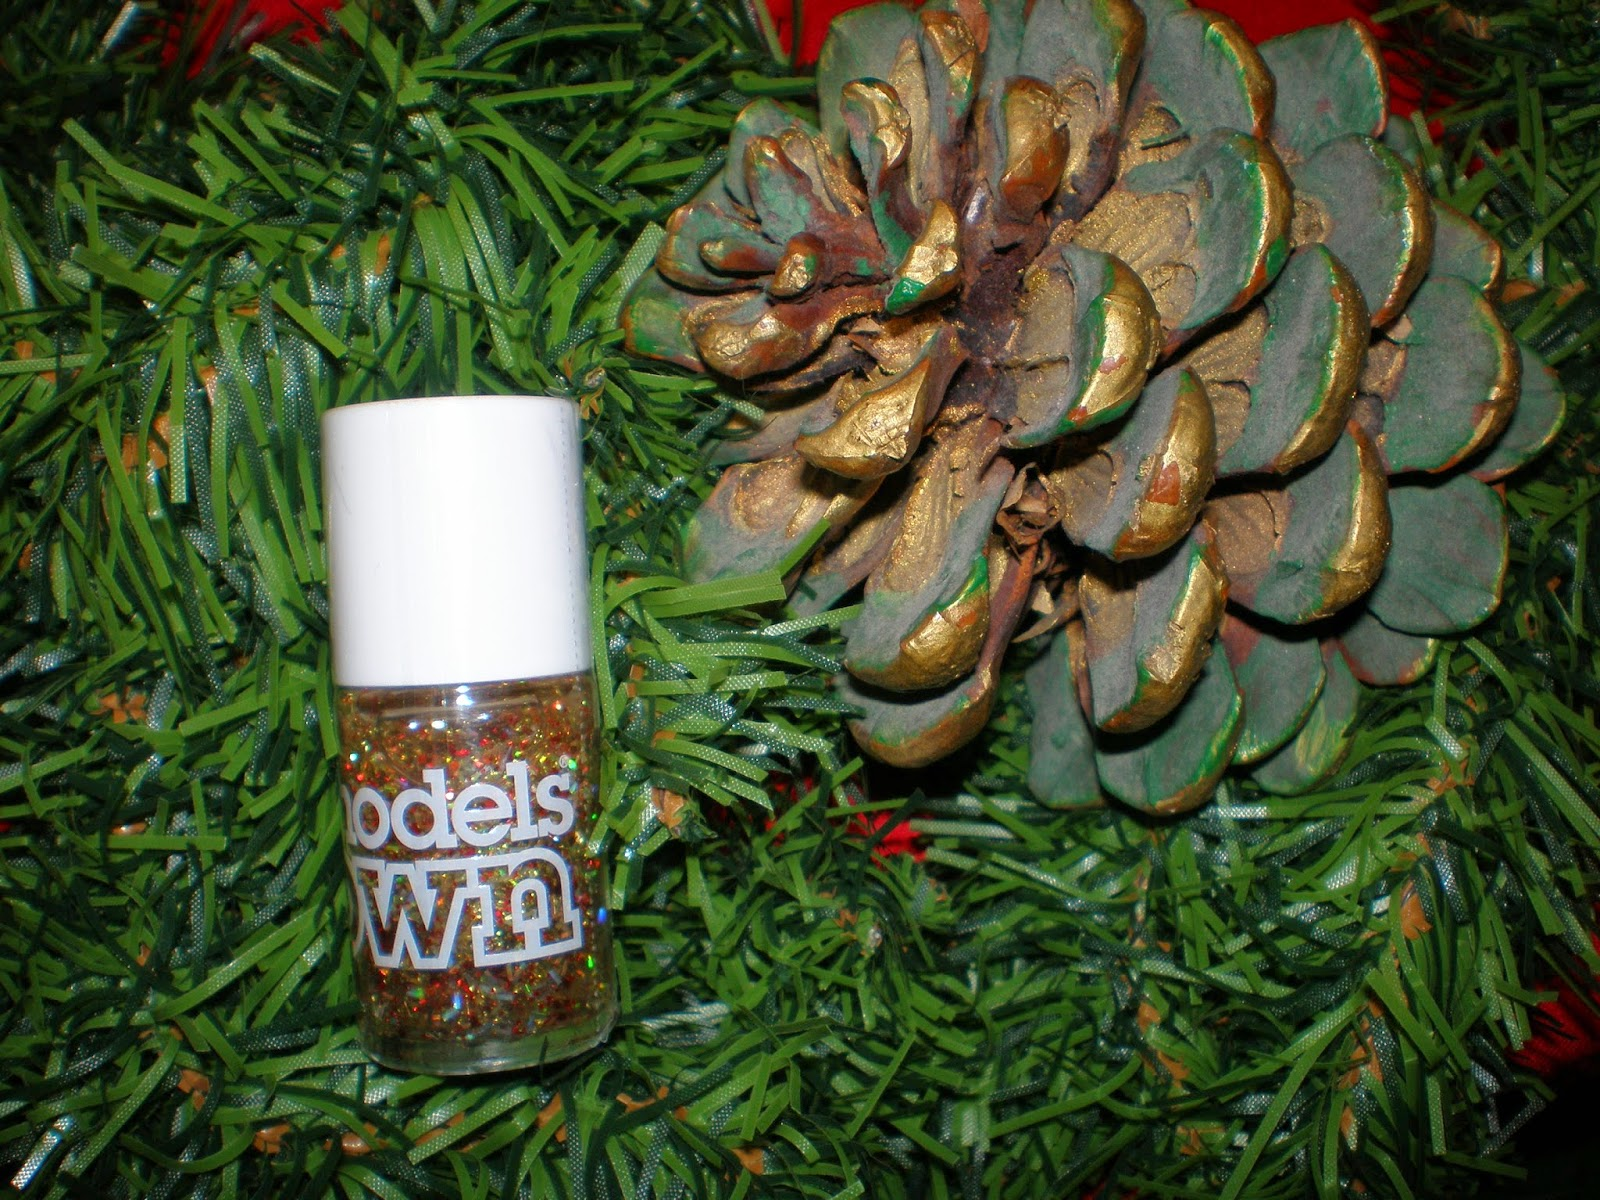 MODELS OWN Nail polish from Fireworks collection